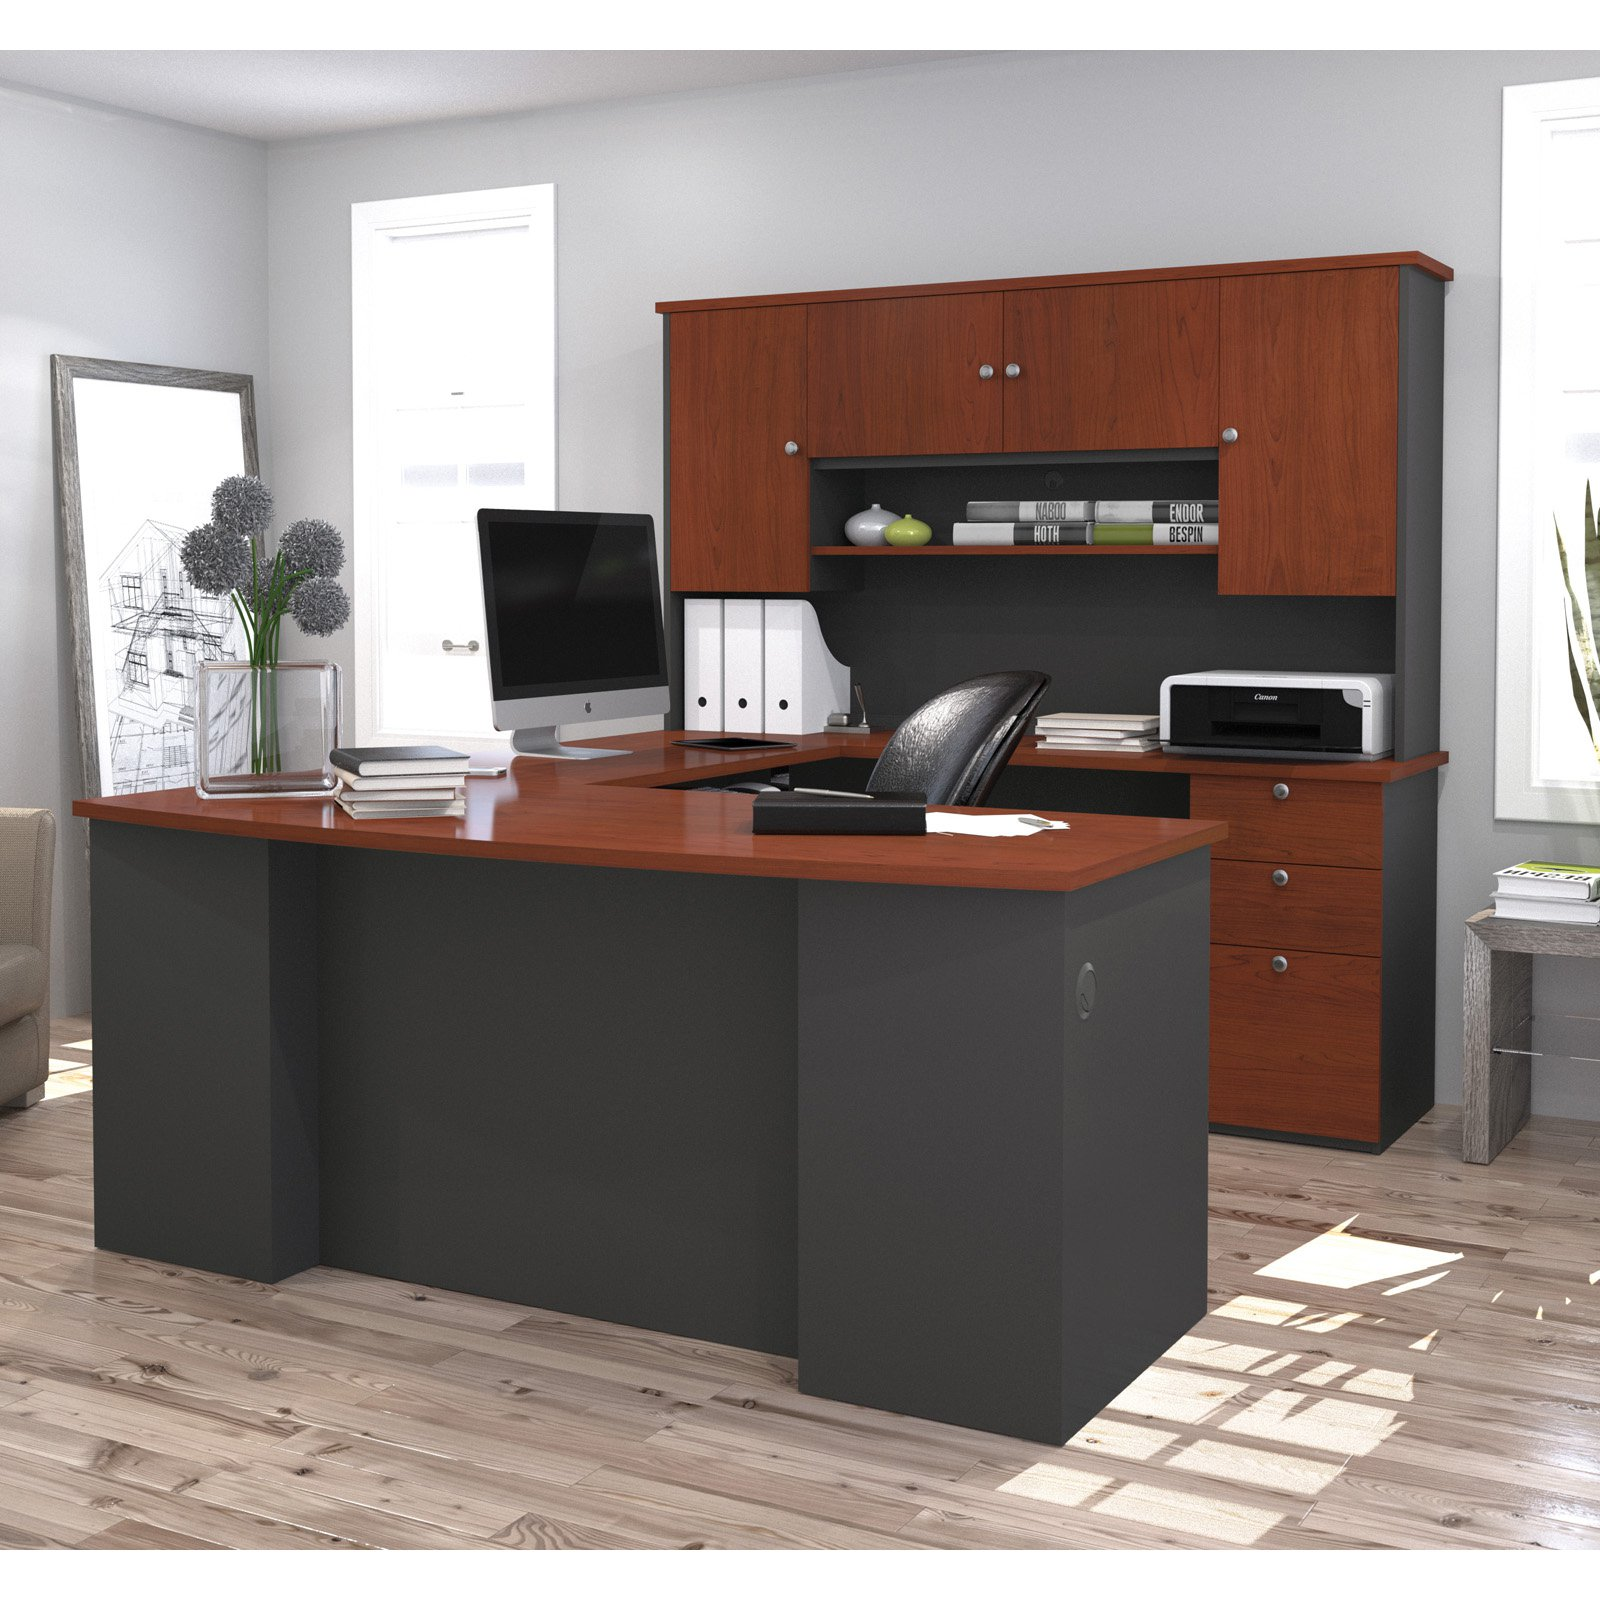 bestar manhattan u shaped workstation bordeaux graphite walmart com rh walmart com bestar ridgeley u-shaped desk in dark chocolate and white chocolate bestar ridgeley u-shaped desk with lateral file and bookcase